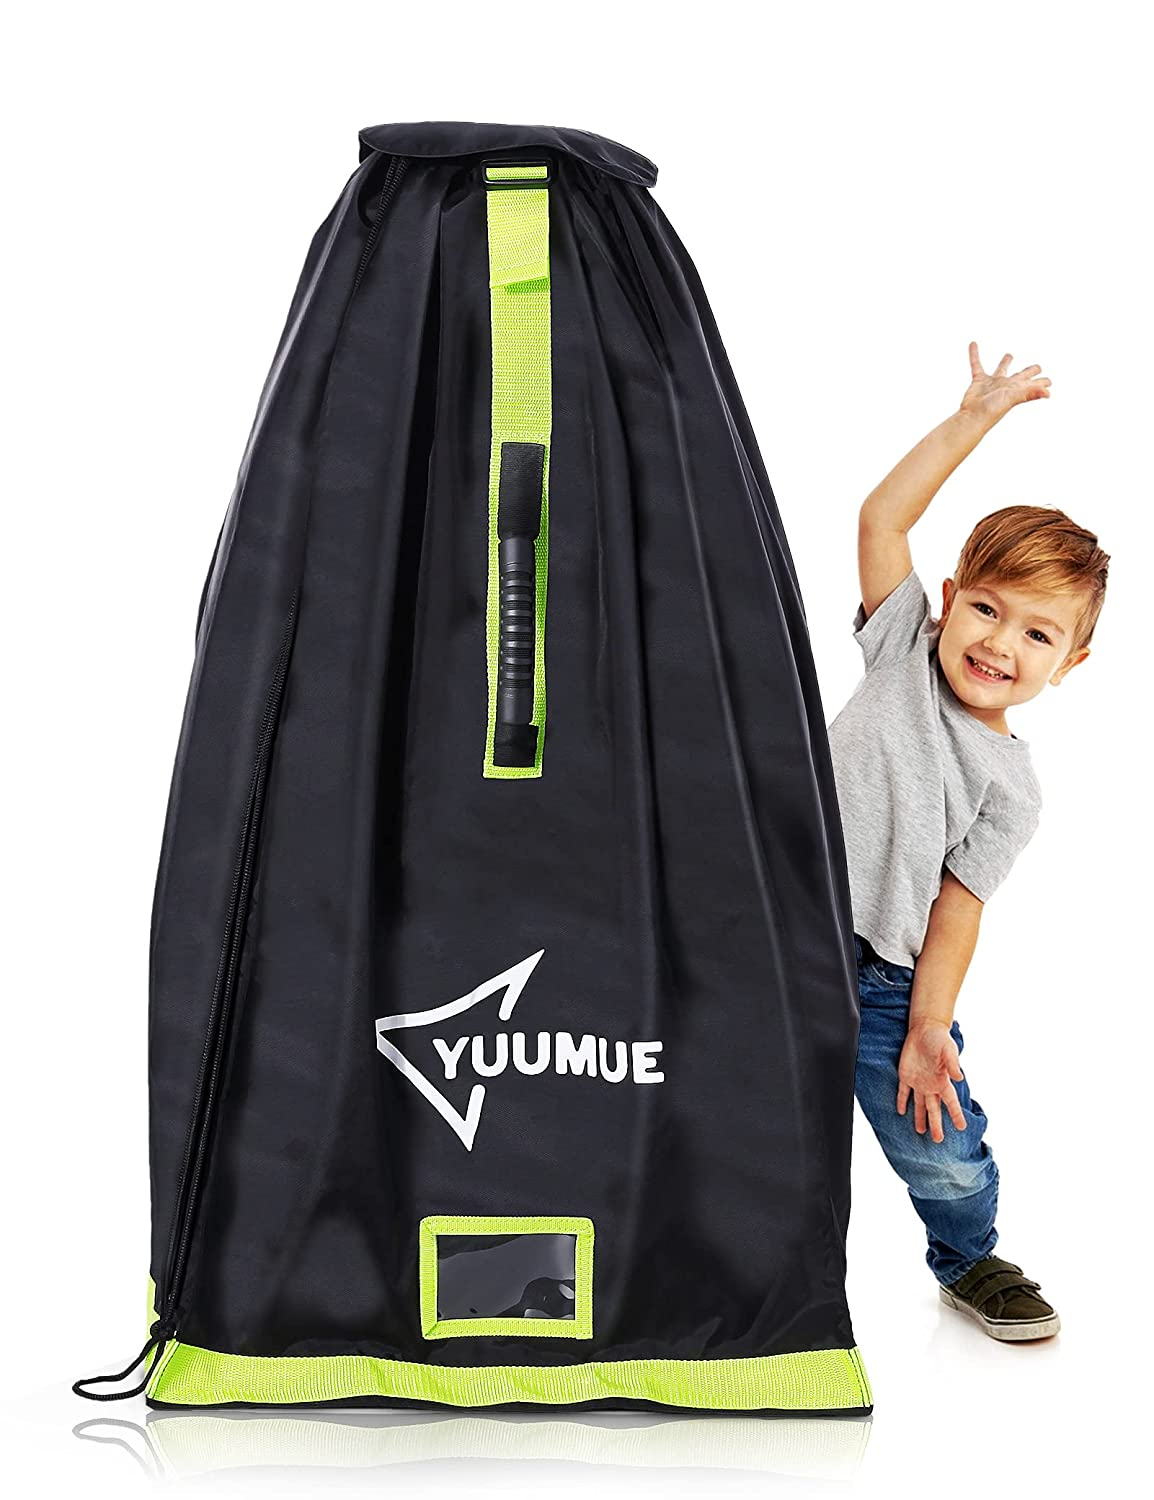 Yuumue Car Seat Travel Bag, Carseat Bag for Airplane Waterproof & Durable Adjustable Foldable Baby Straps, Easy Carry Gate Check Bag Protect to Transport Through The Airport